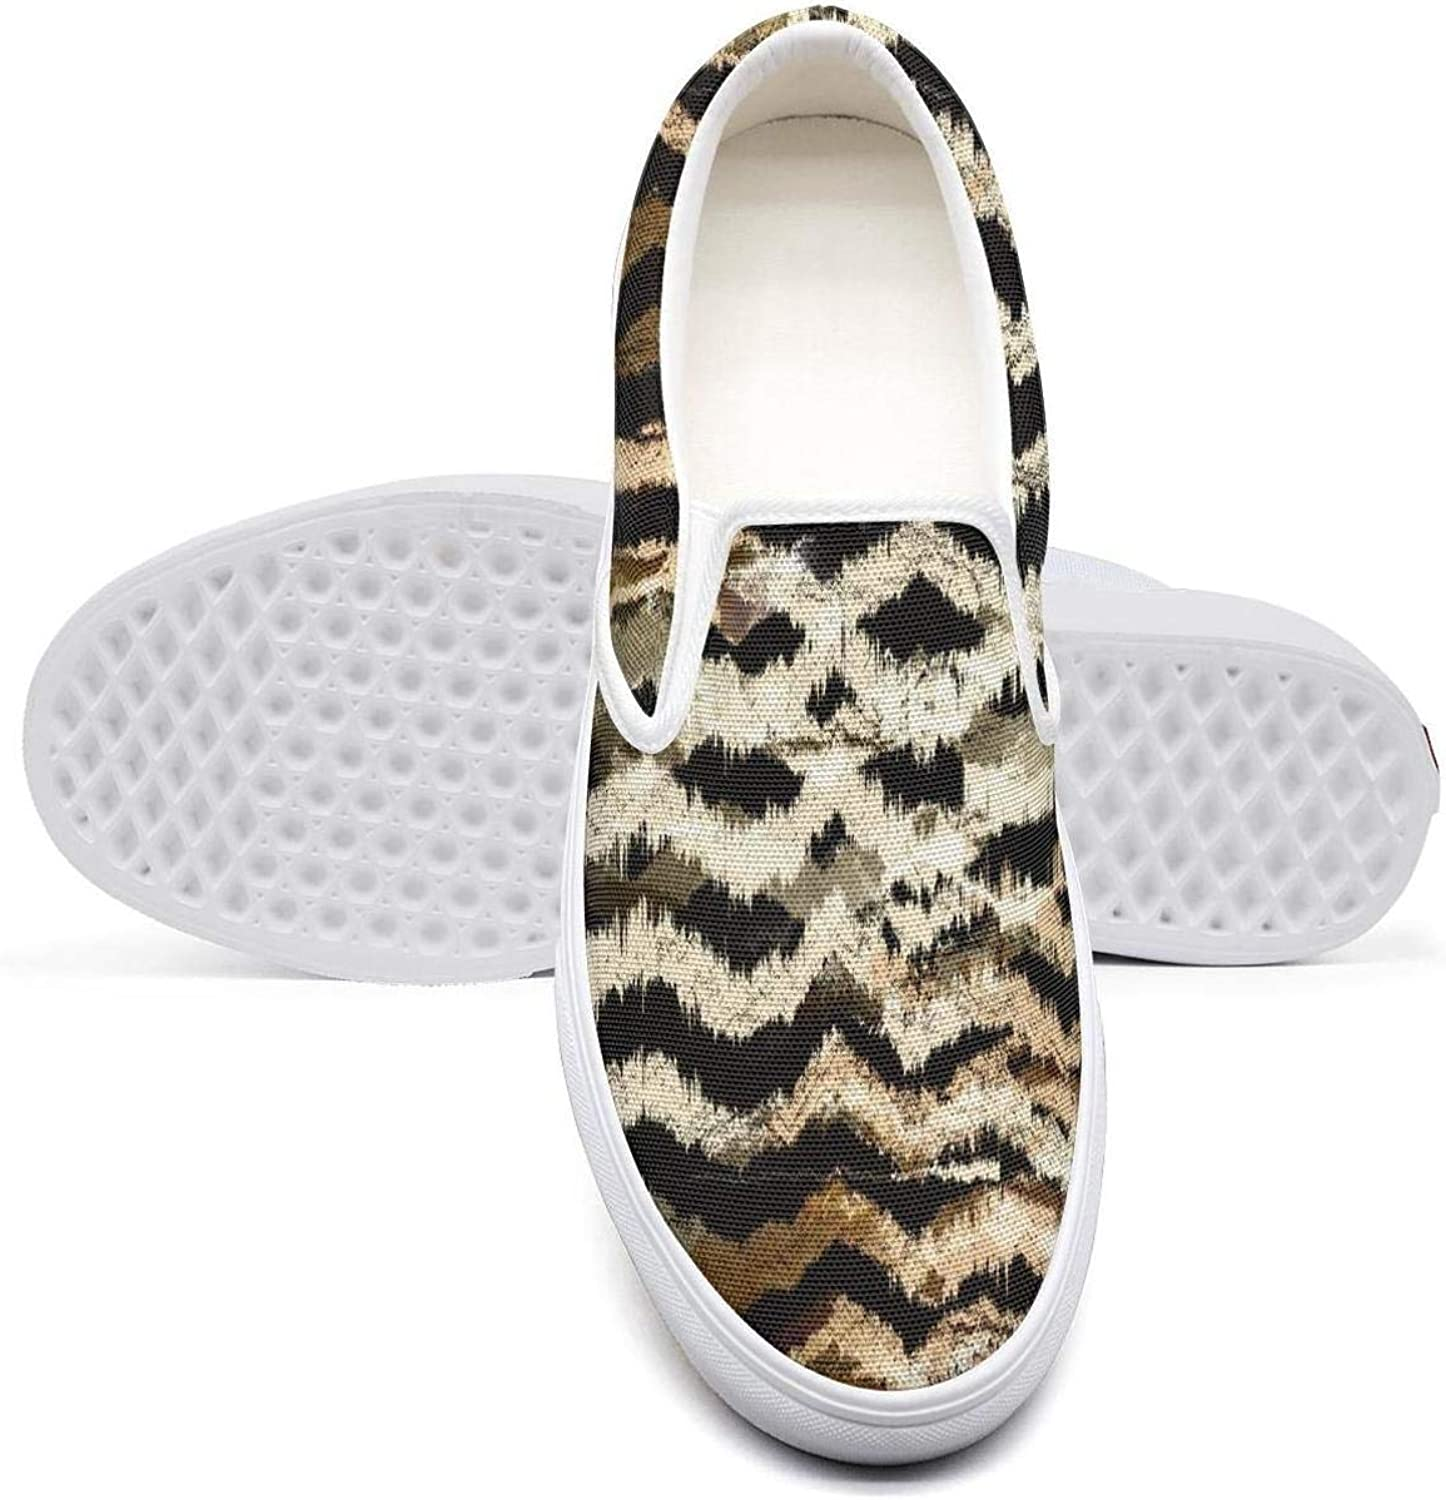 VXCVF Leopard and Snake Design Attractive Women Canvas Sneakers Loafers shoefor Womens